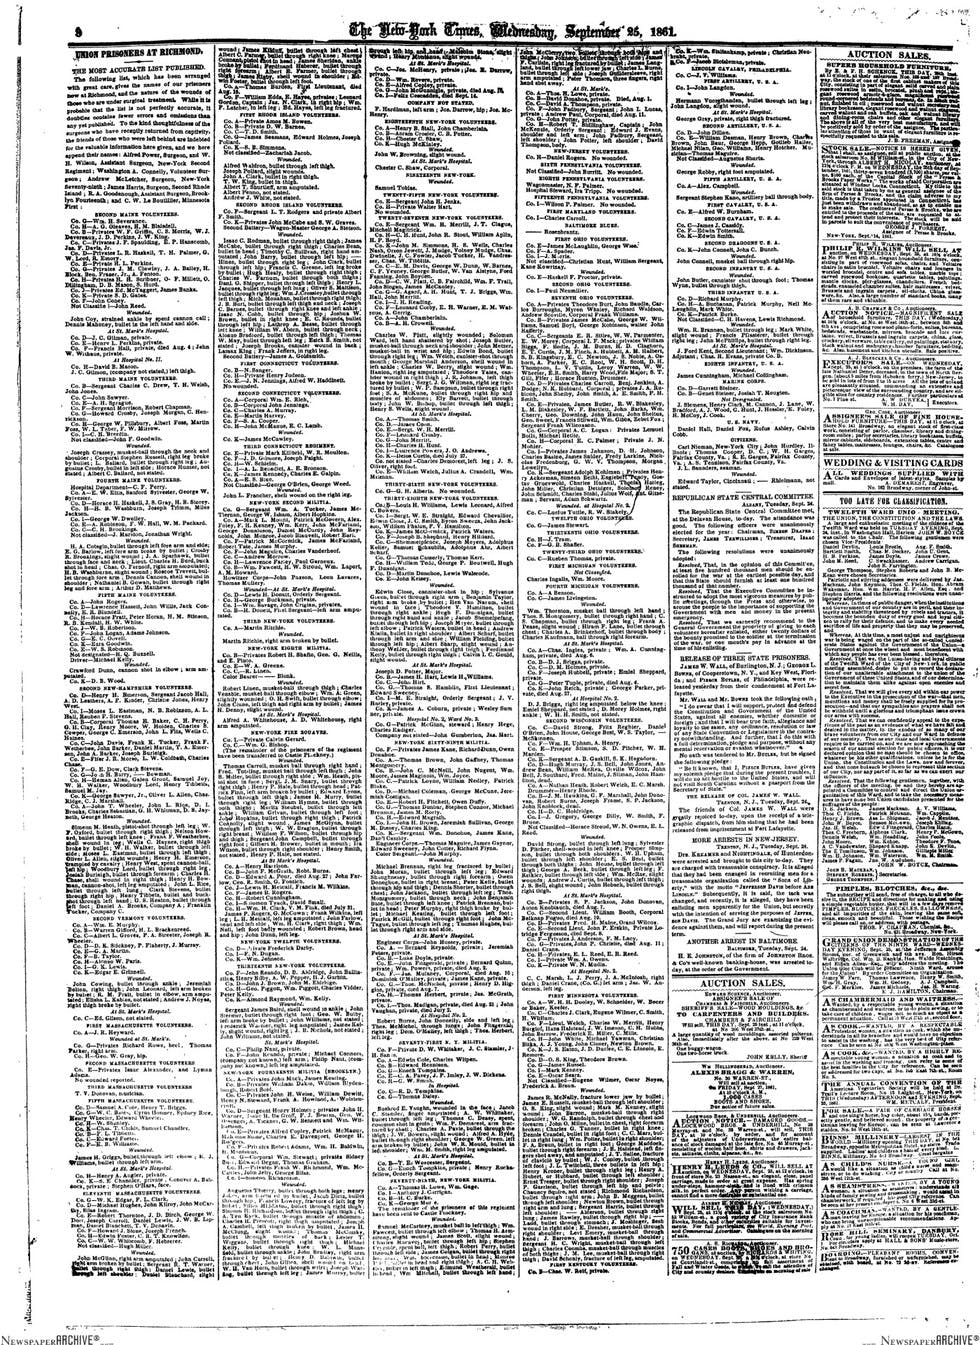 The New York Times, September 25th 1861.